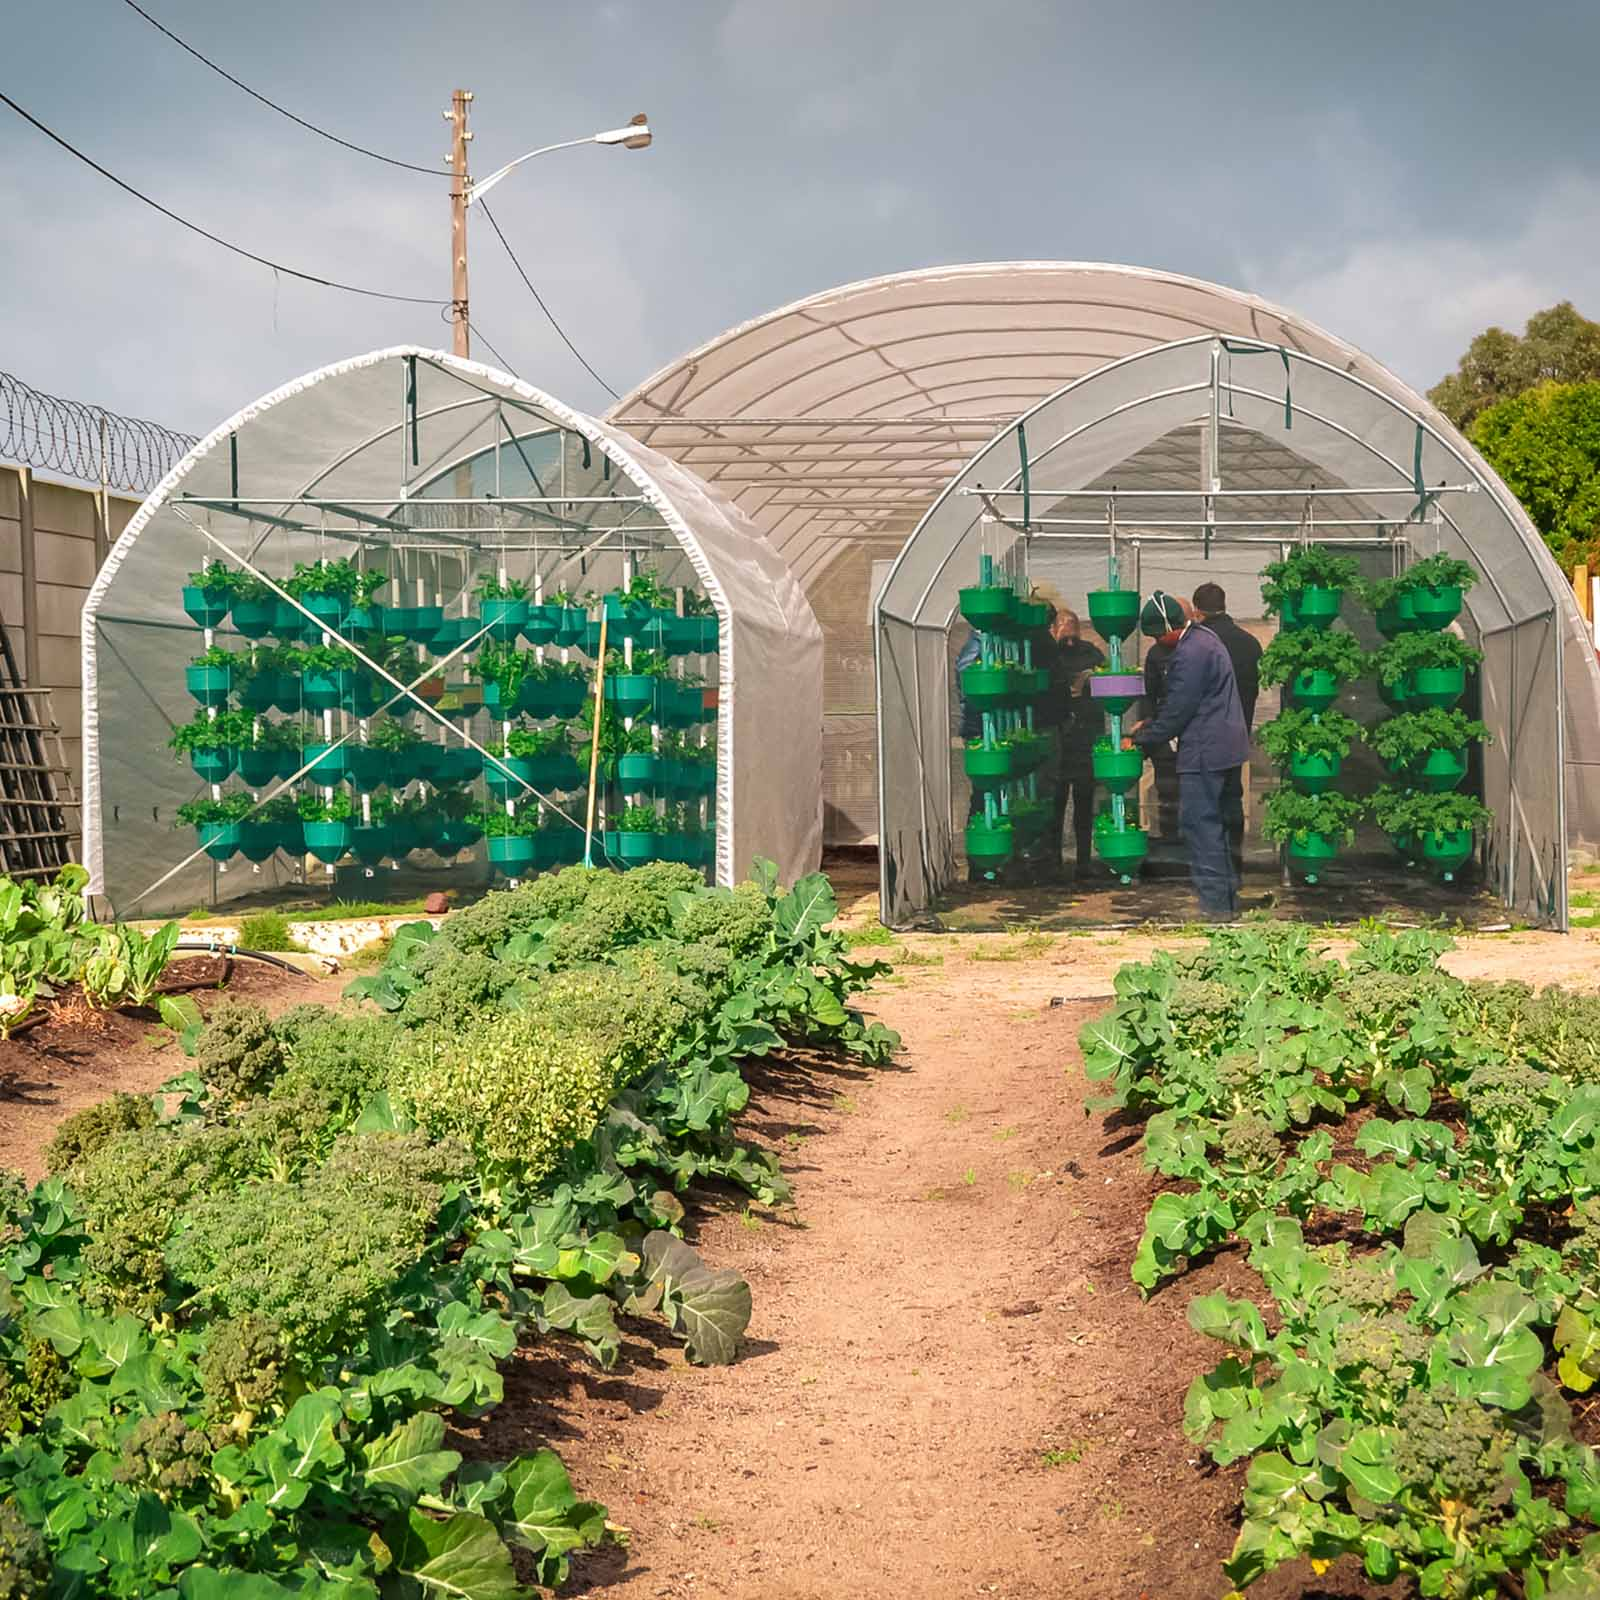 an urban farm outside of cape town with rows of green vegetables that need sustainable living charities to help them get grow better with new soil